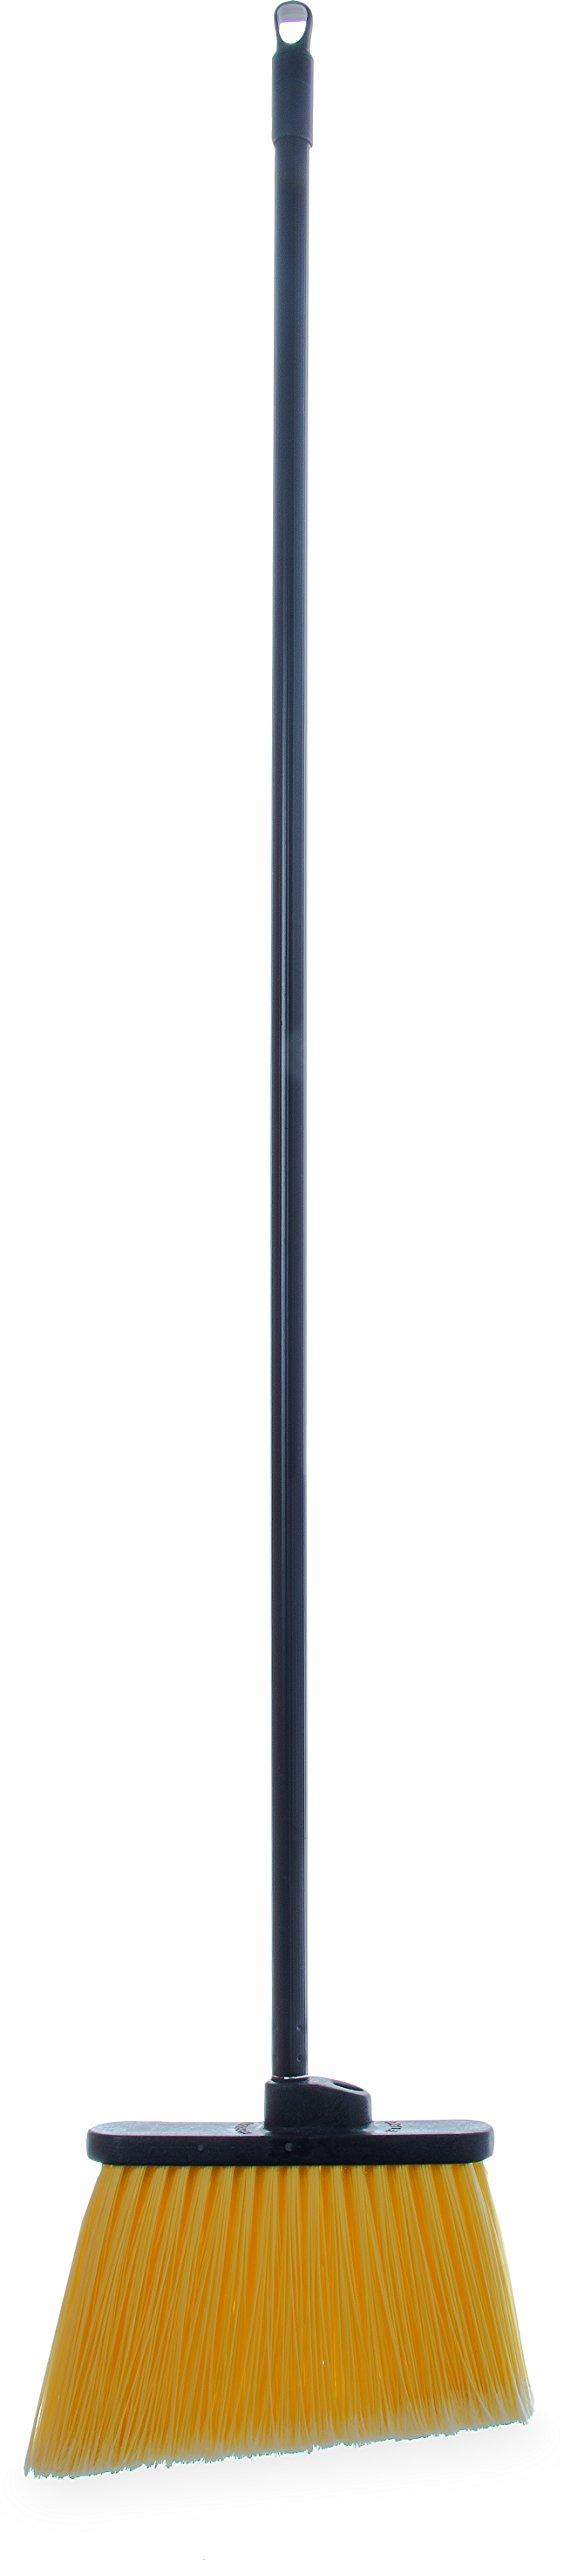 Carlisle 3686500 Duo-Sweep Flagged Angle Broom, 56'' Length